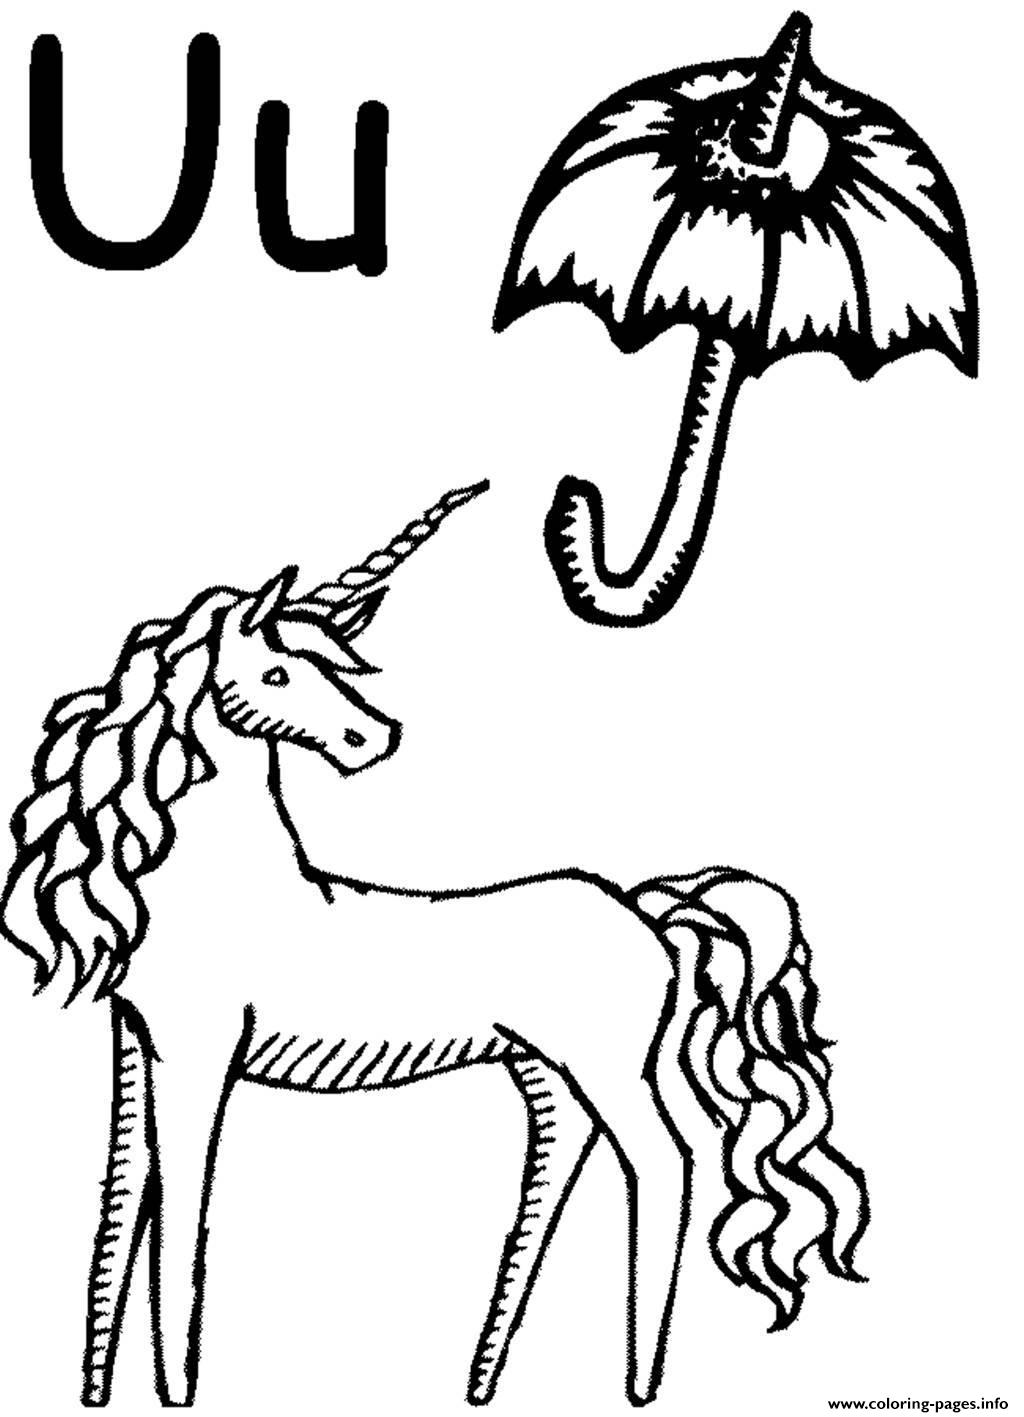 Unicorn And Umbrella Alphabet S Free4979 Coloring Pages Printable